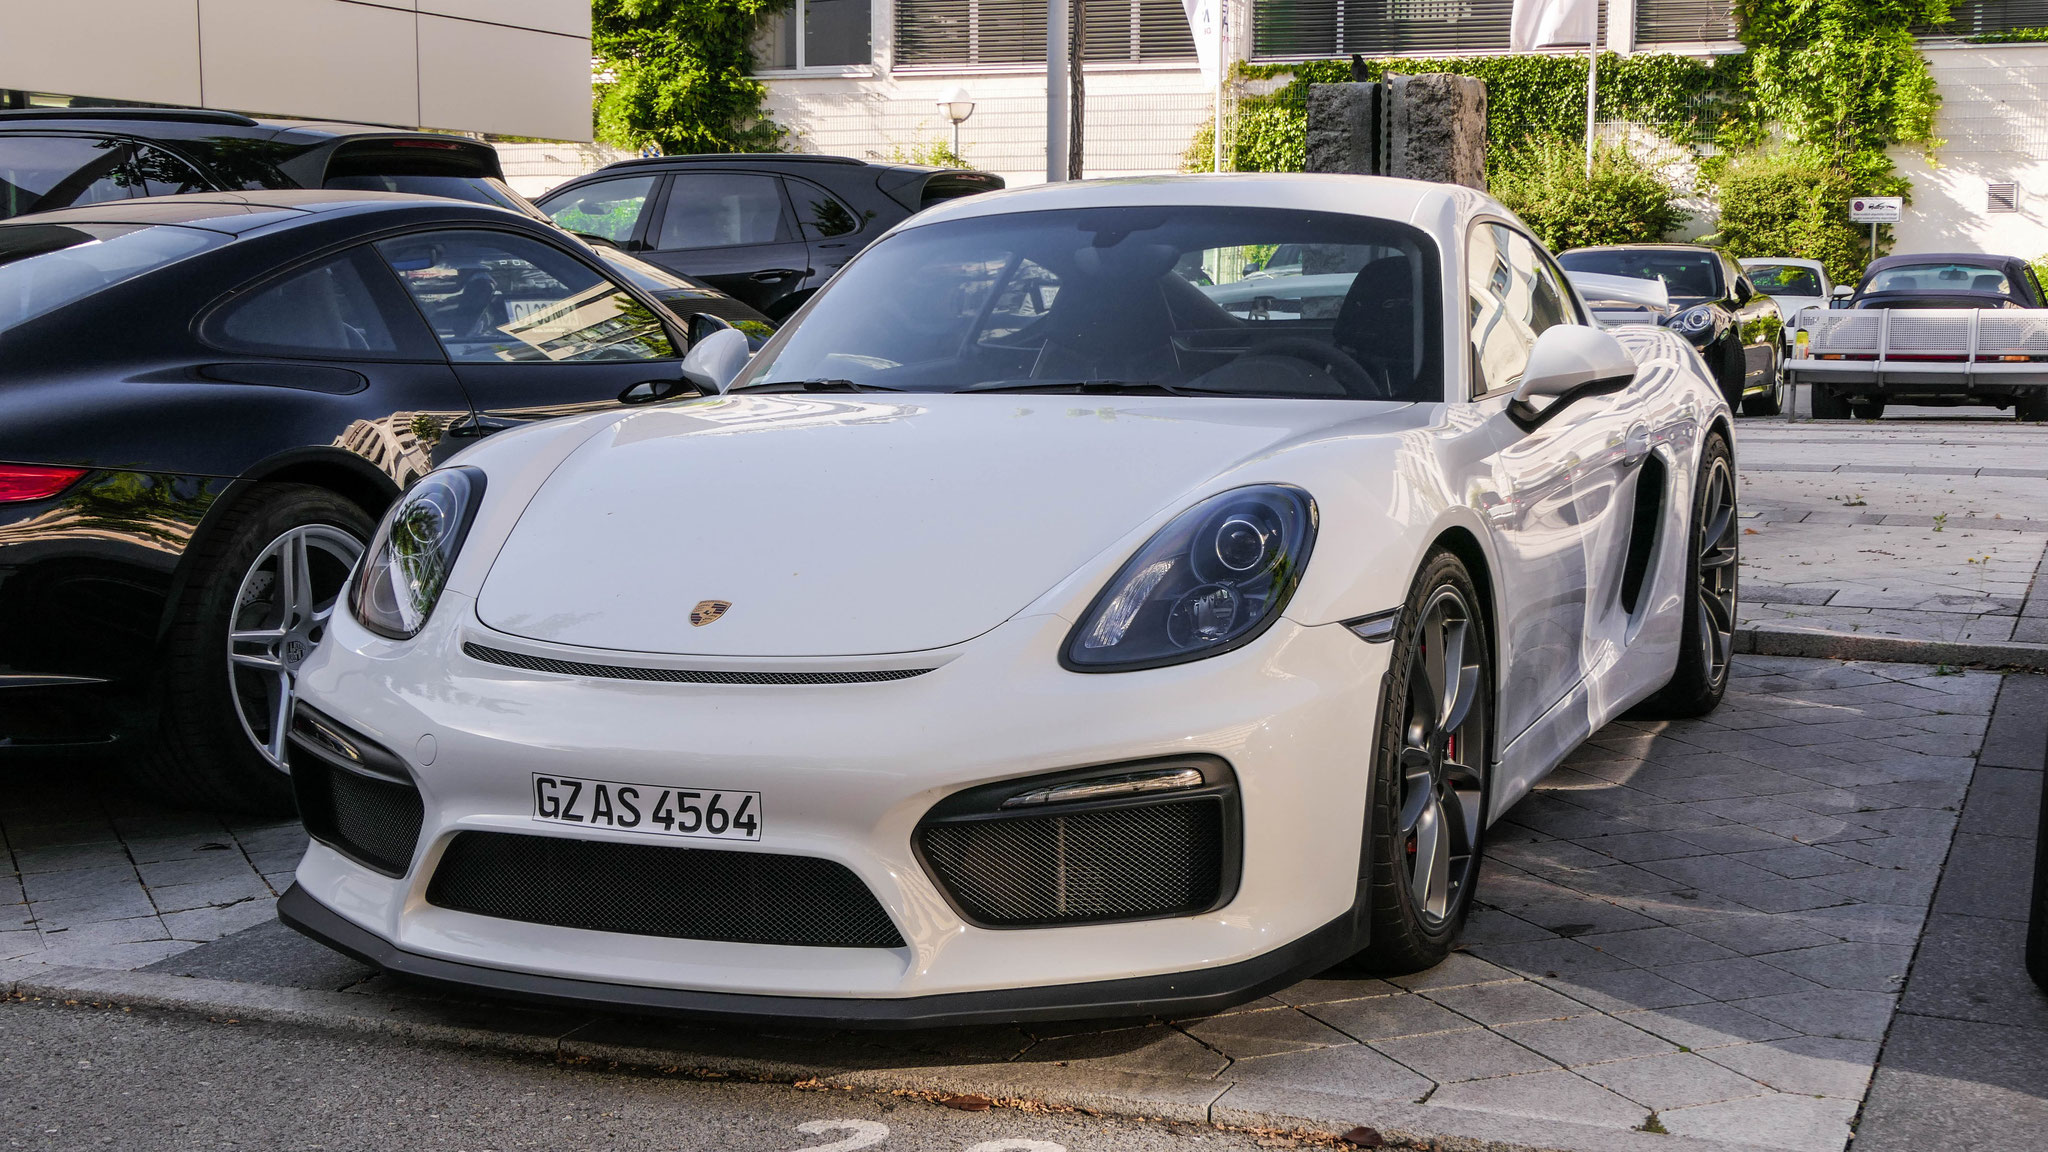 Porsche Cayman GT4 - GZ-AS-4564